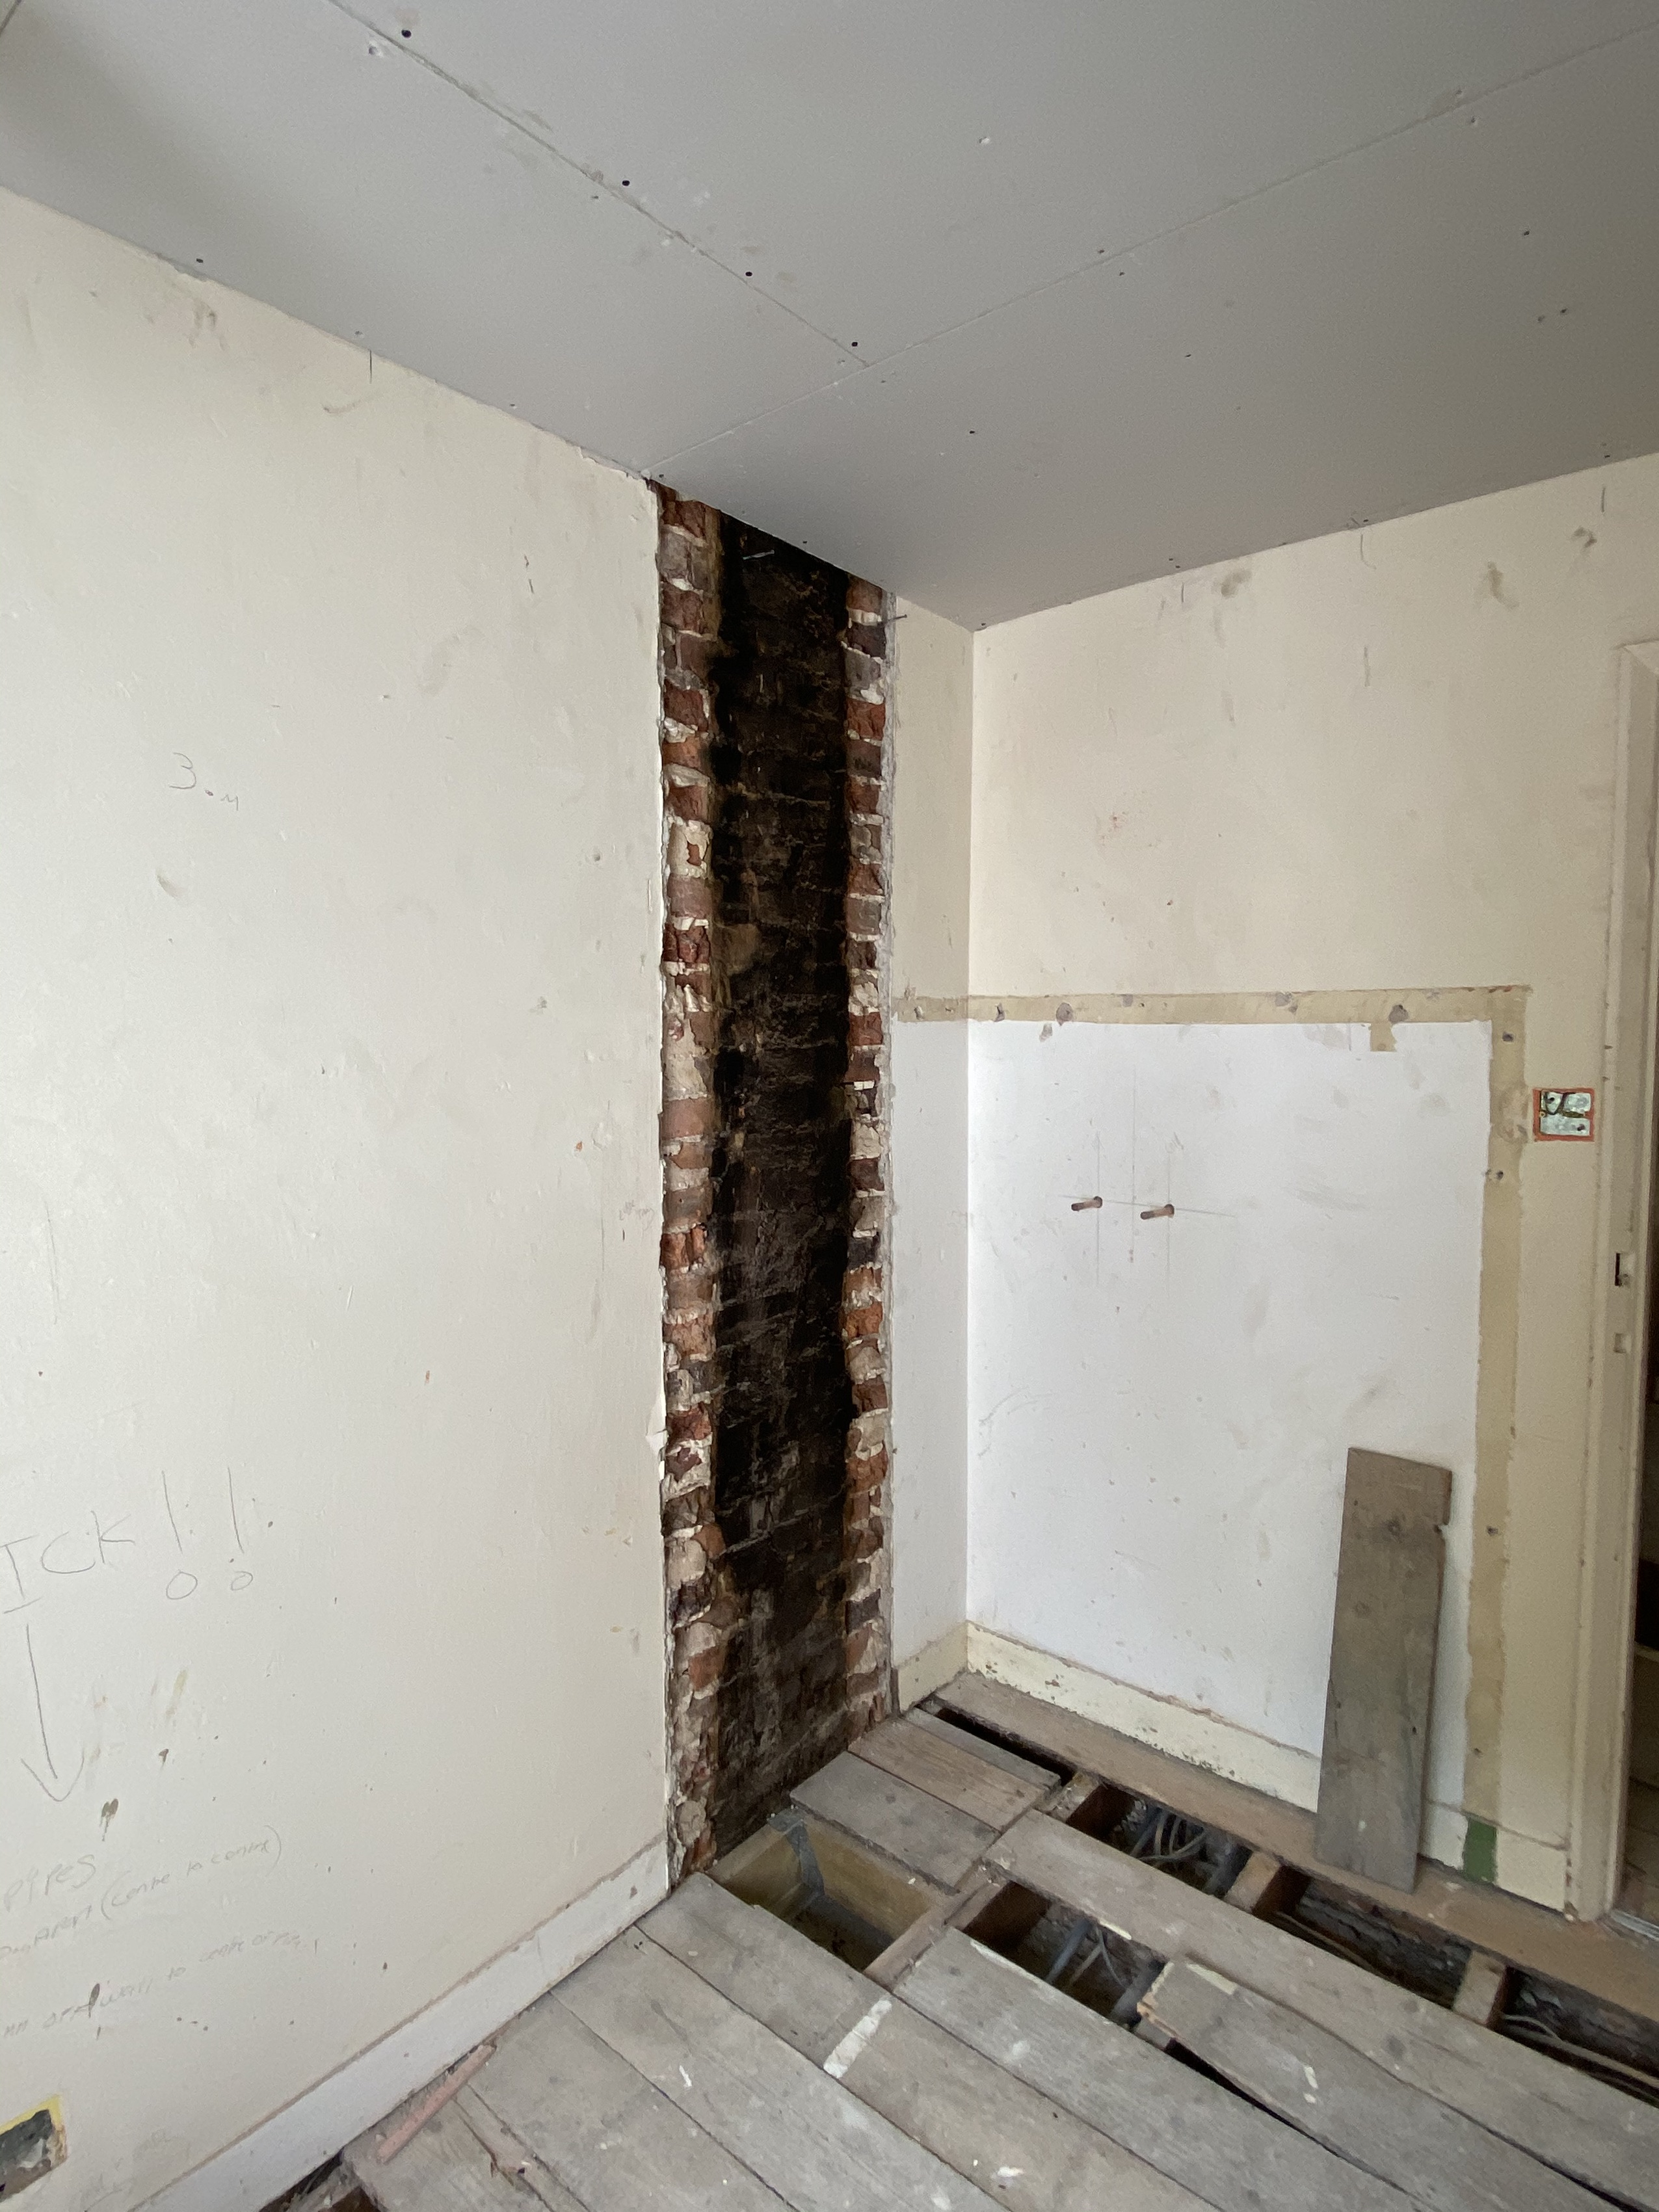 Chimney And Fireplace Removed.